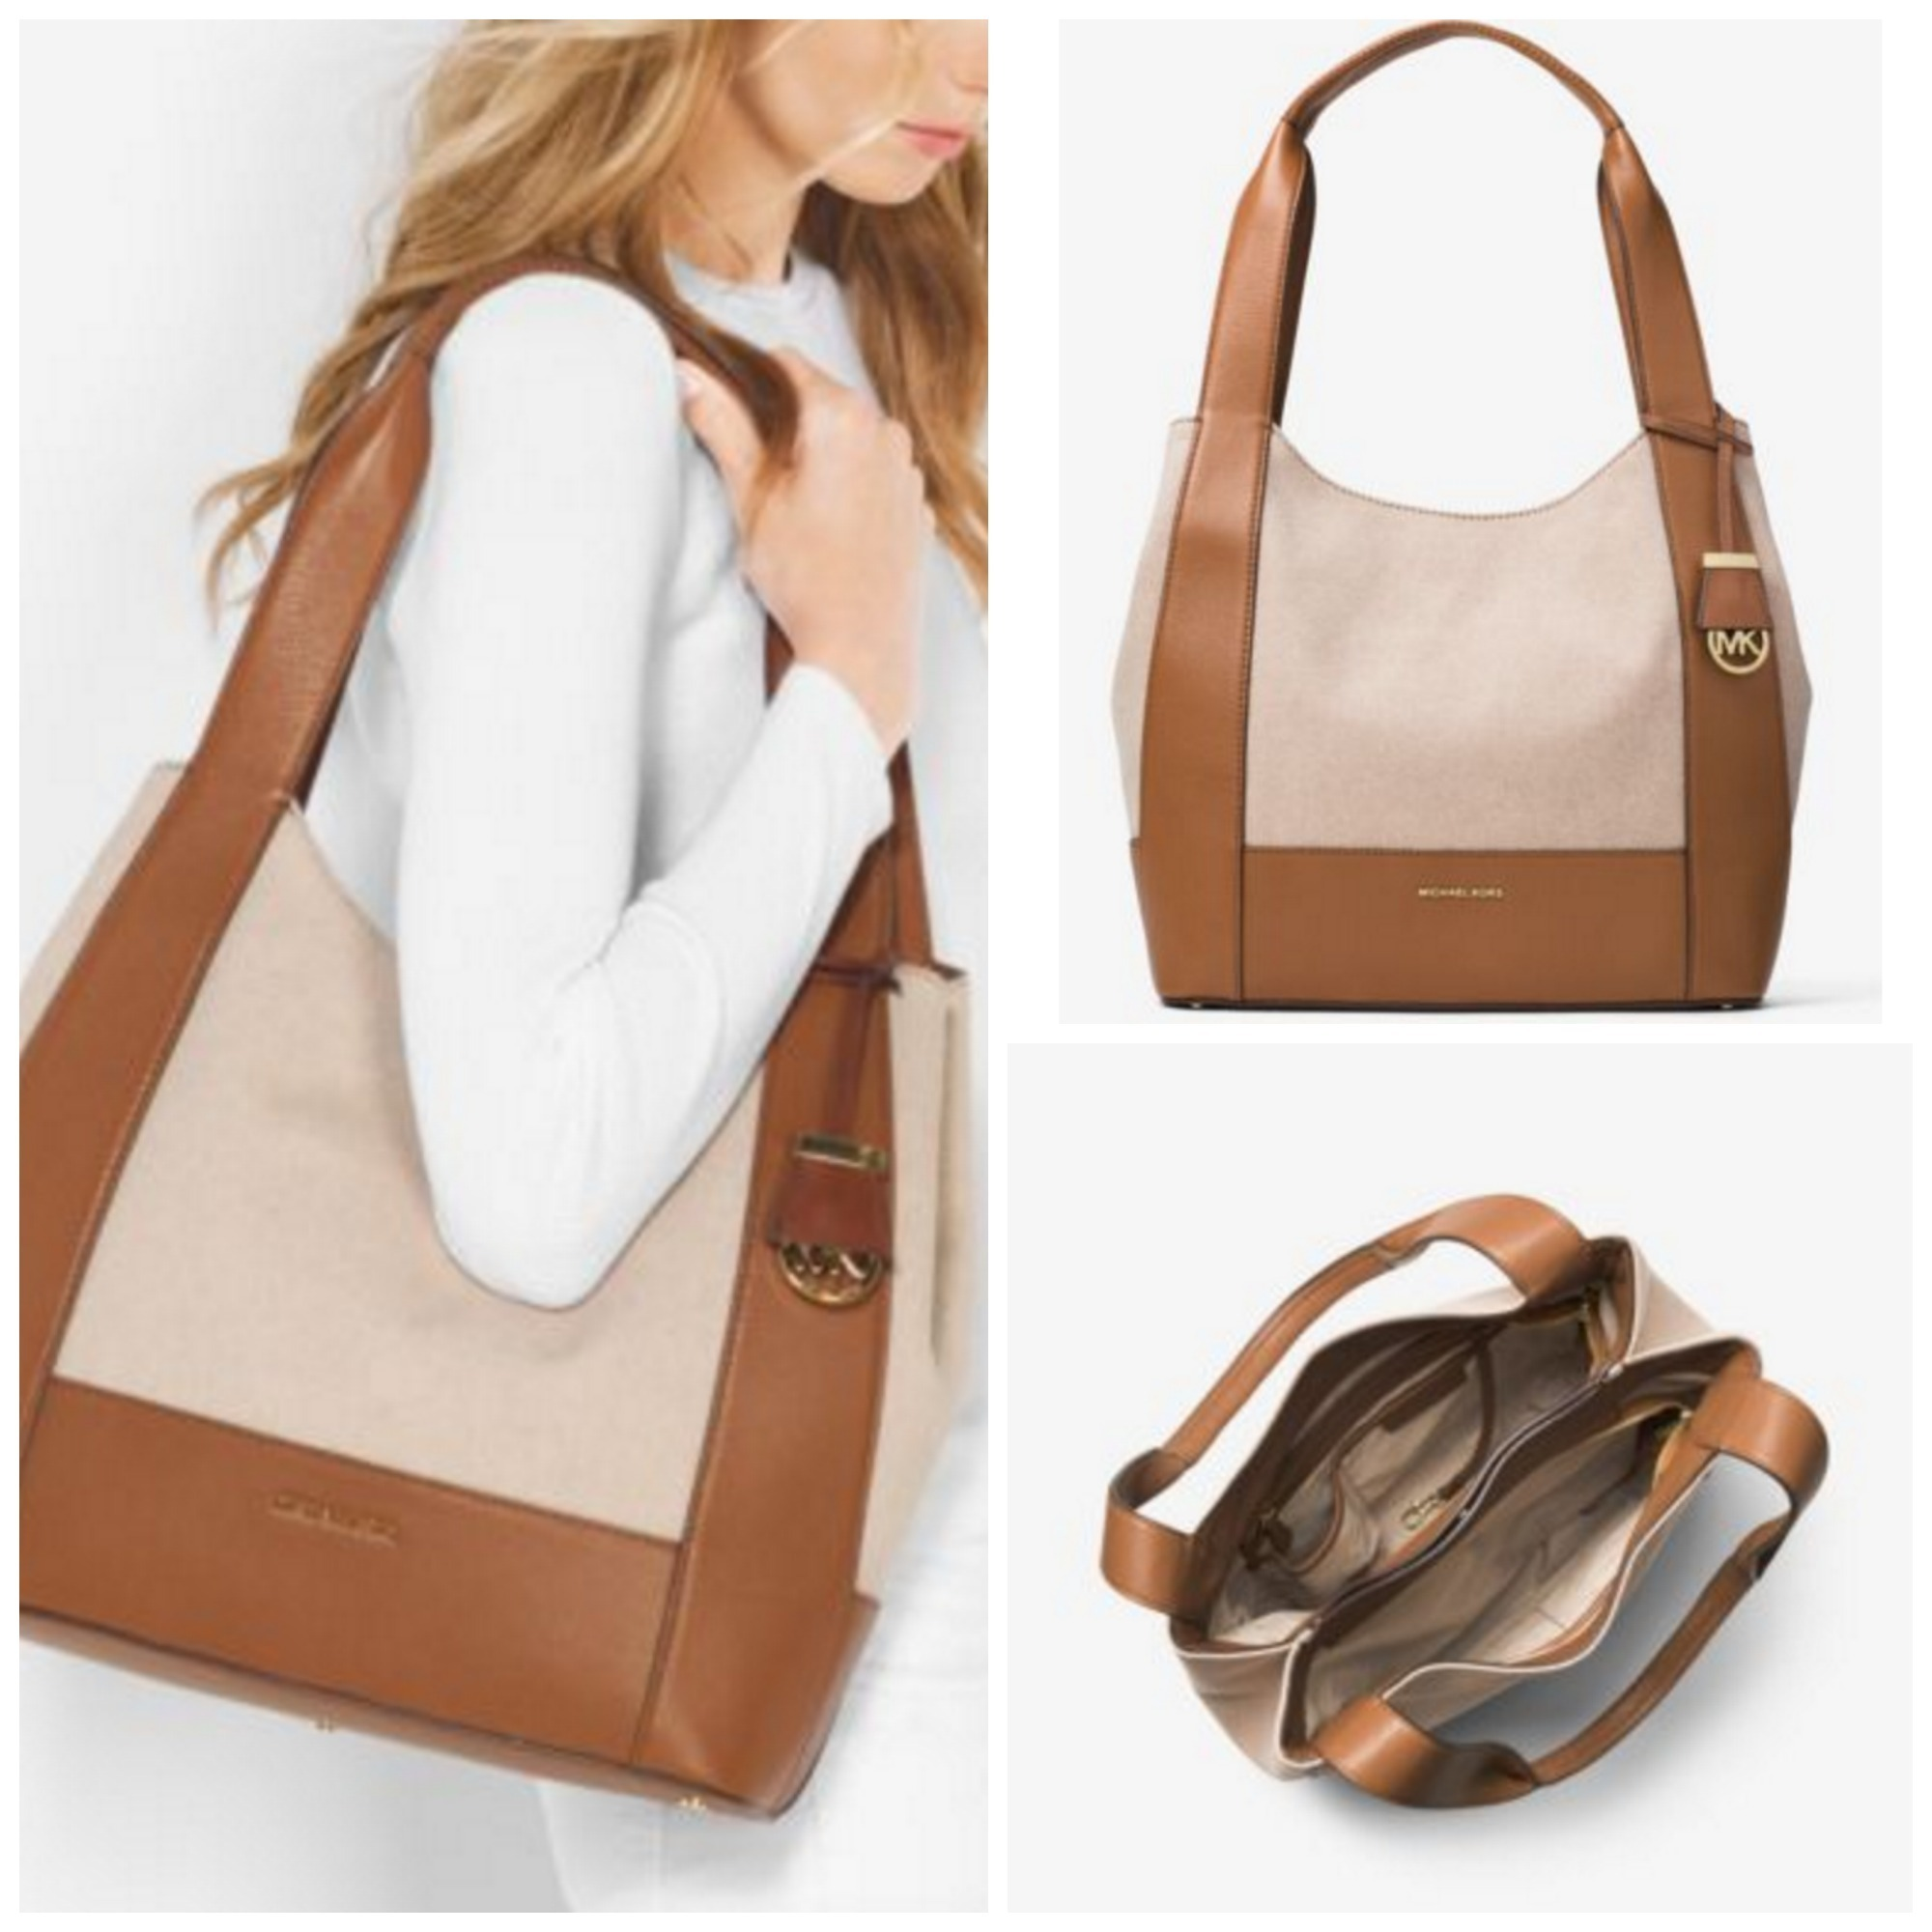 efb09f929a195a Michael Kors MK MICHAEL KORS Marlon Large Canvas & Leather Shoulder Tote by  QueenOfStyle - BUYMA